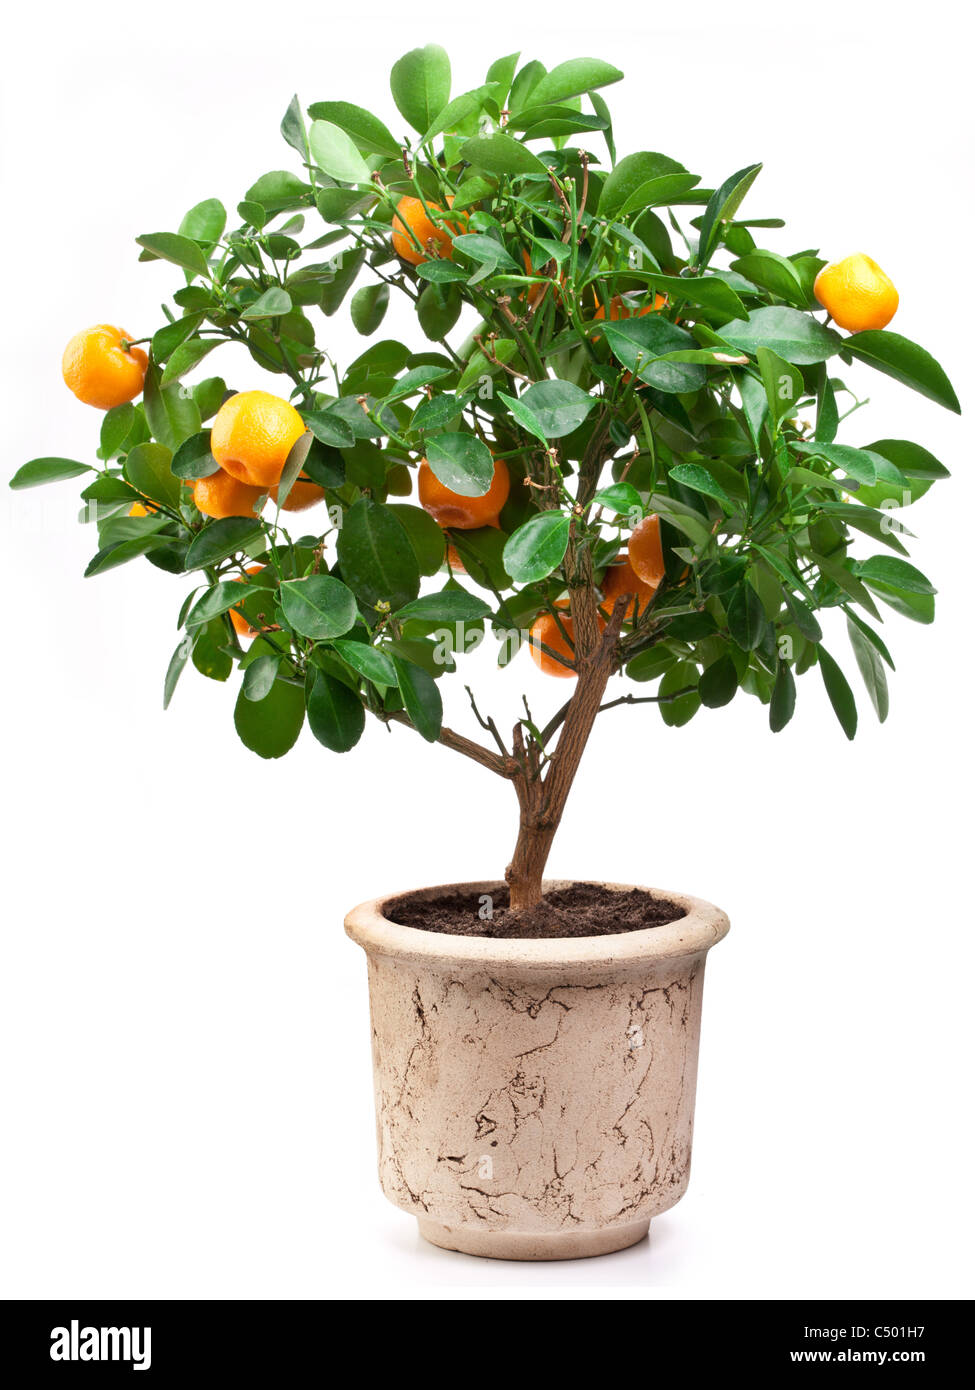 Small tangerines tree on white background. - Stock Image